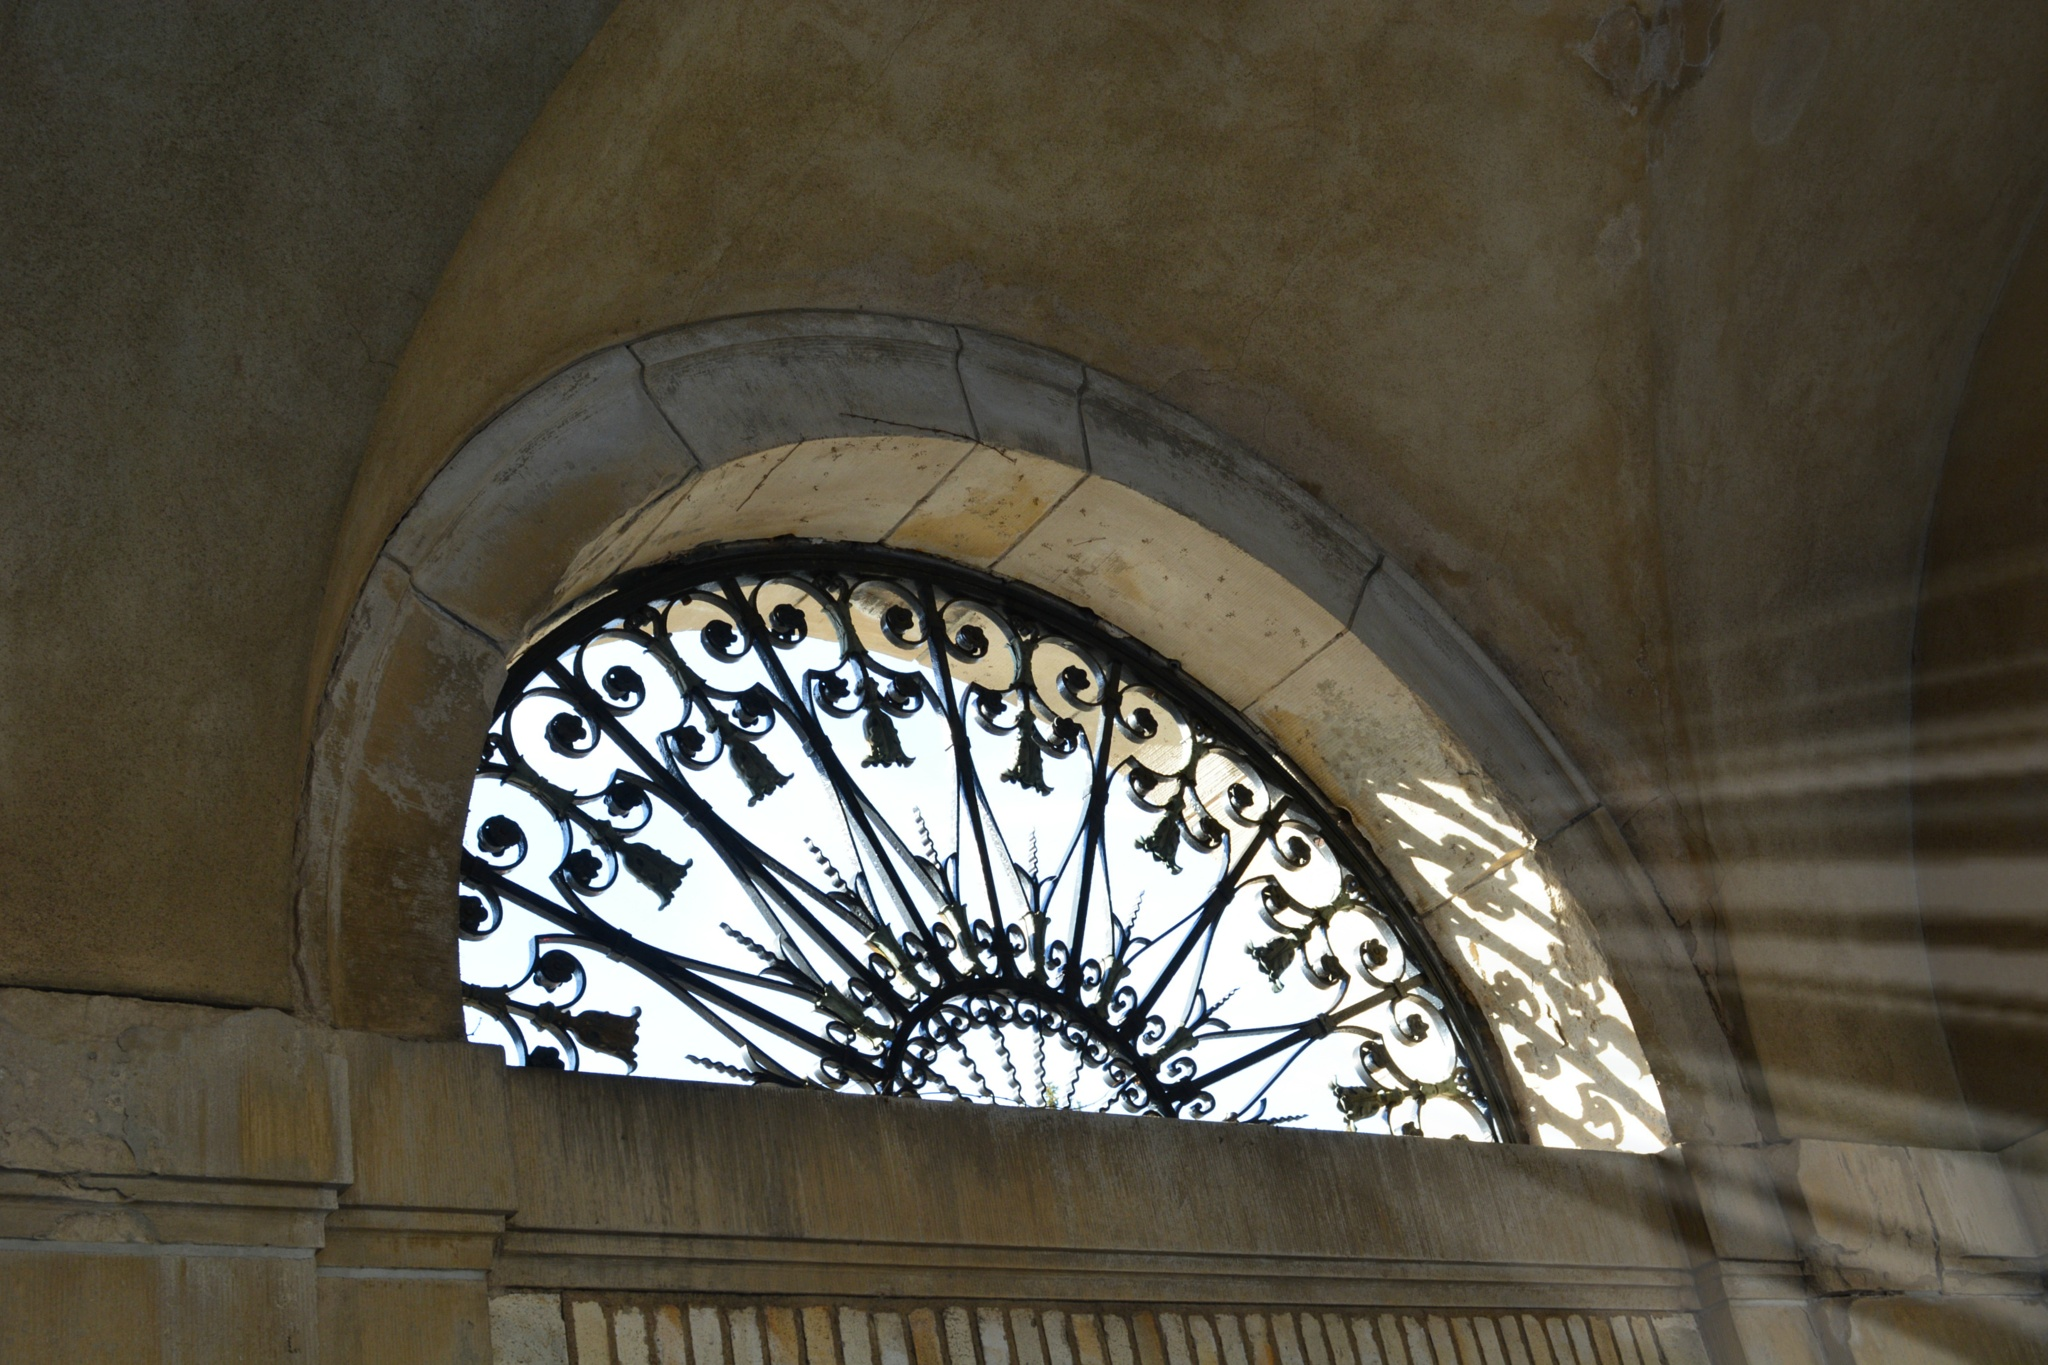 Wrought Iron Window Grill by Luvia42